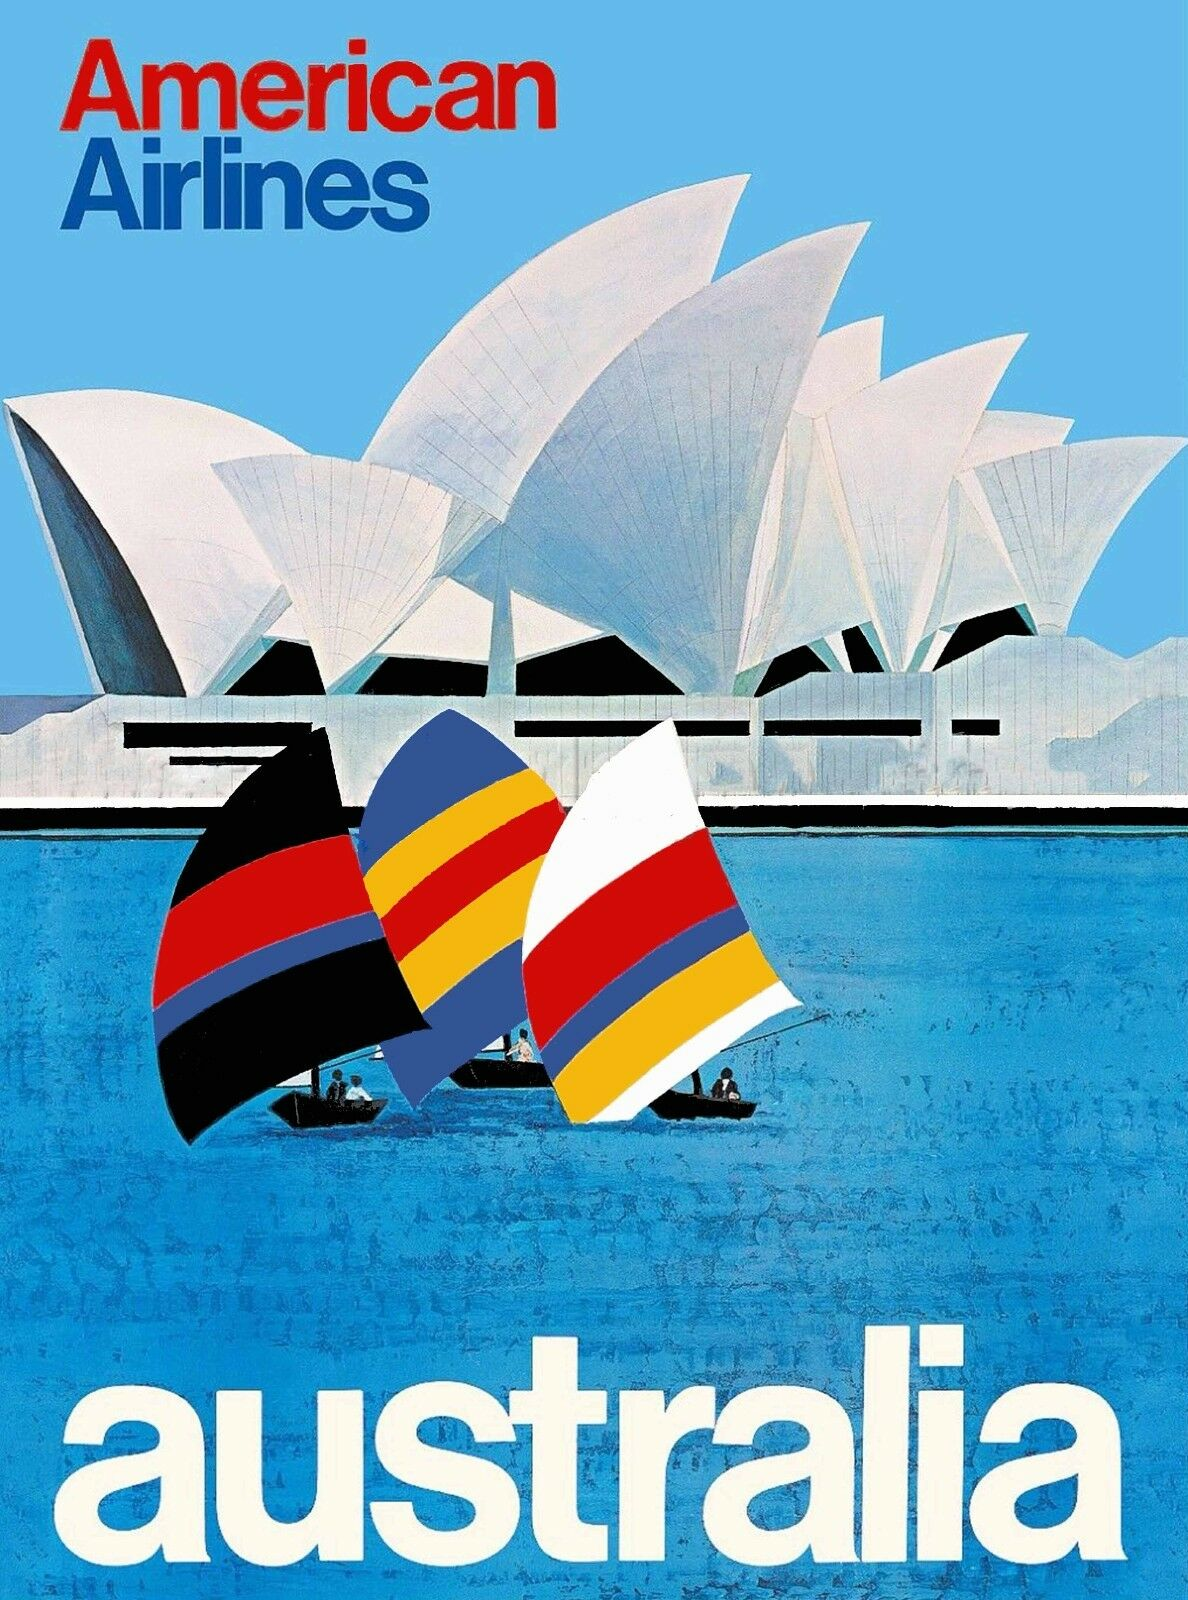 Broadway New York City 1964 American Airlines Vintage Poster Air Travel Print